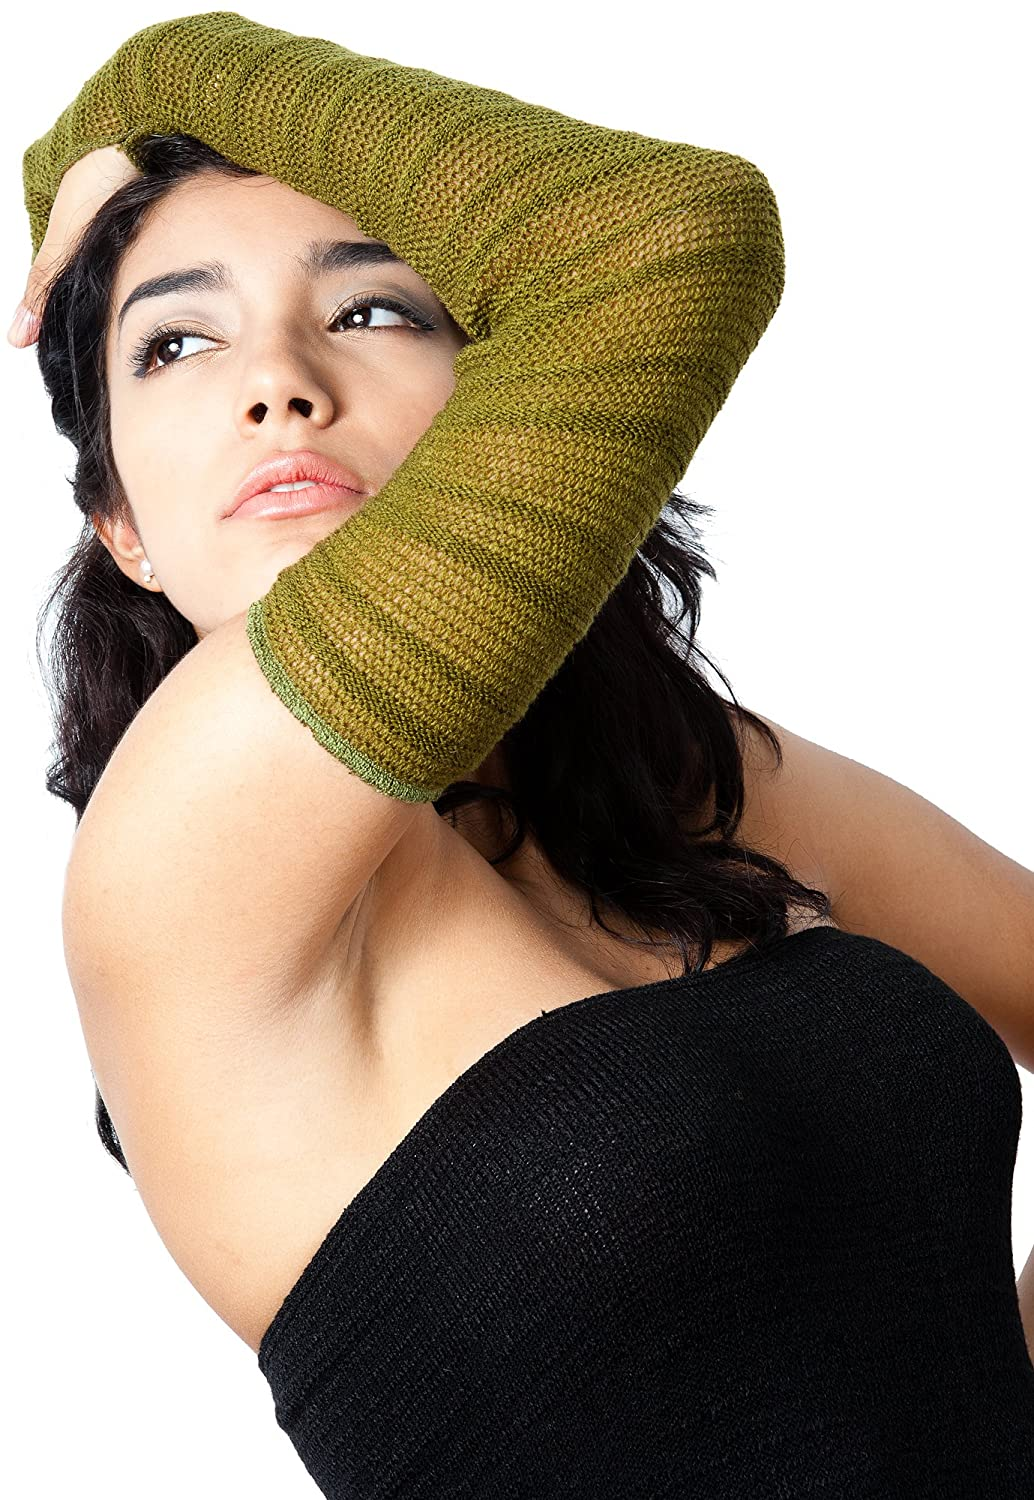 Shadow Stripe Stretch Knit Mesh Arm Warmers by KD dance New York, Unique, Fashionable & Fierce, Soft, Warm & Durable Made In USA